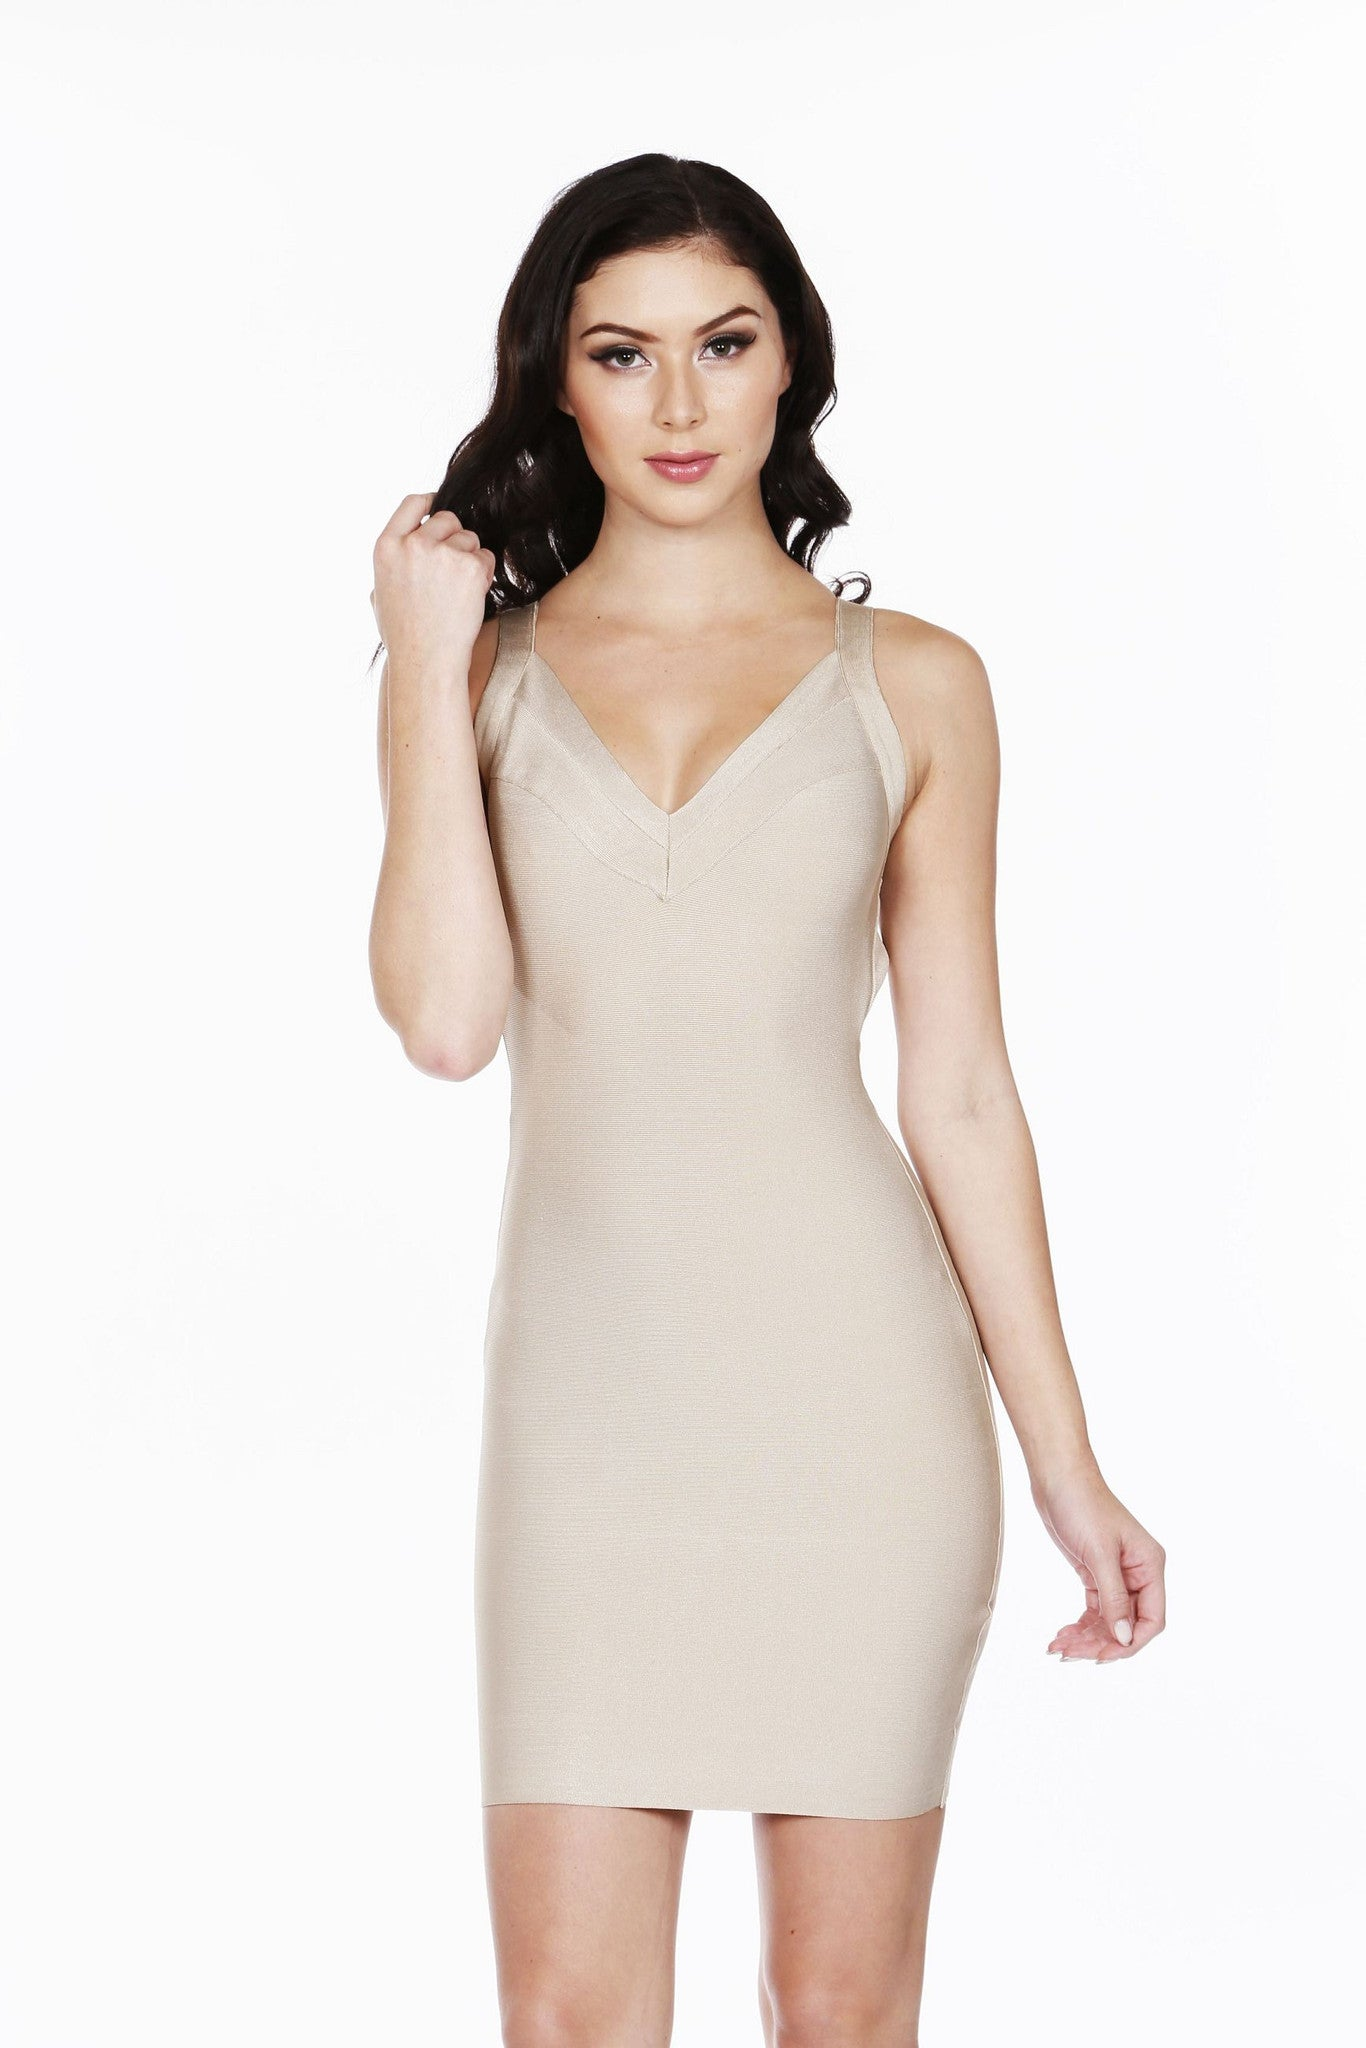 Sand Bandage Dress - waist trainer, dress - waist trainer, swancoast.com ann chery,